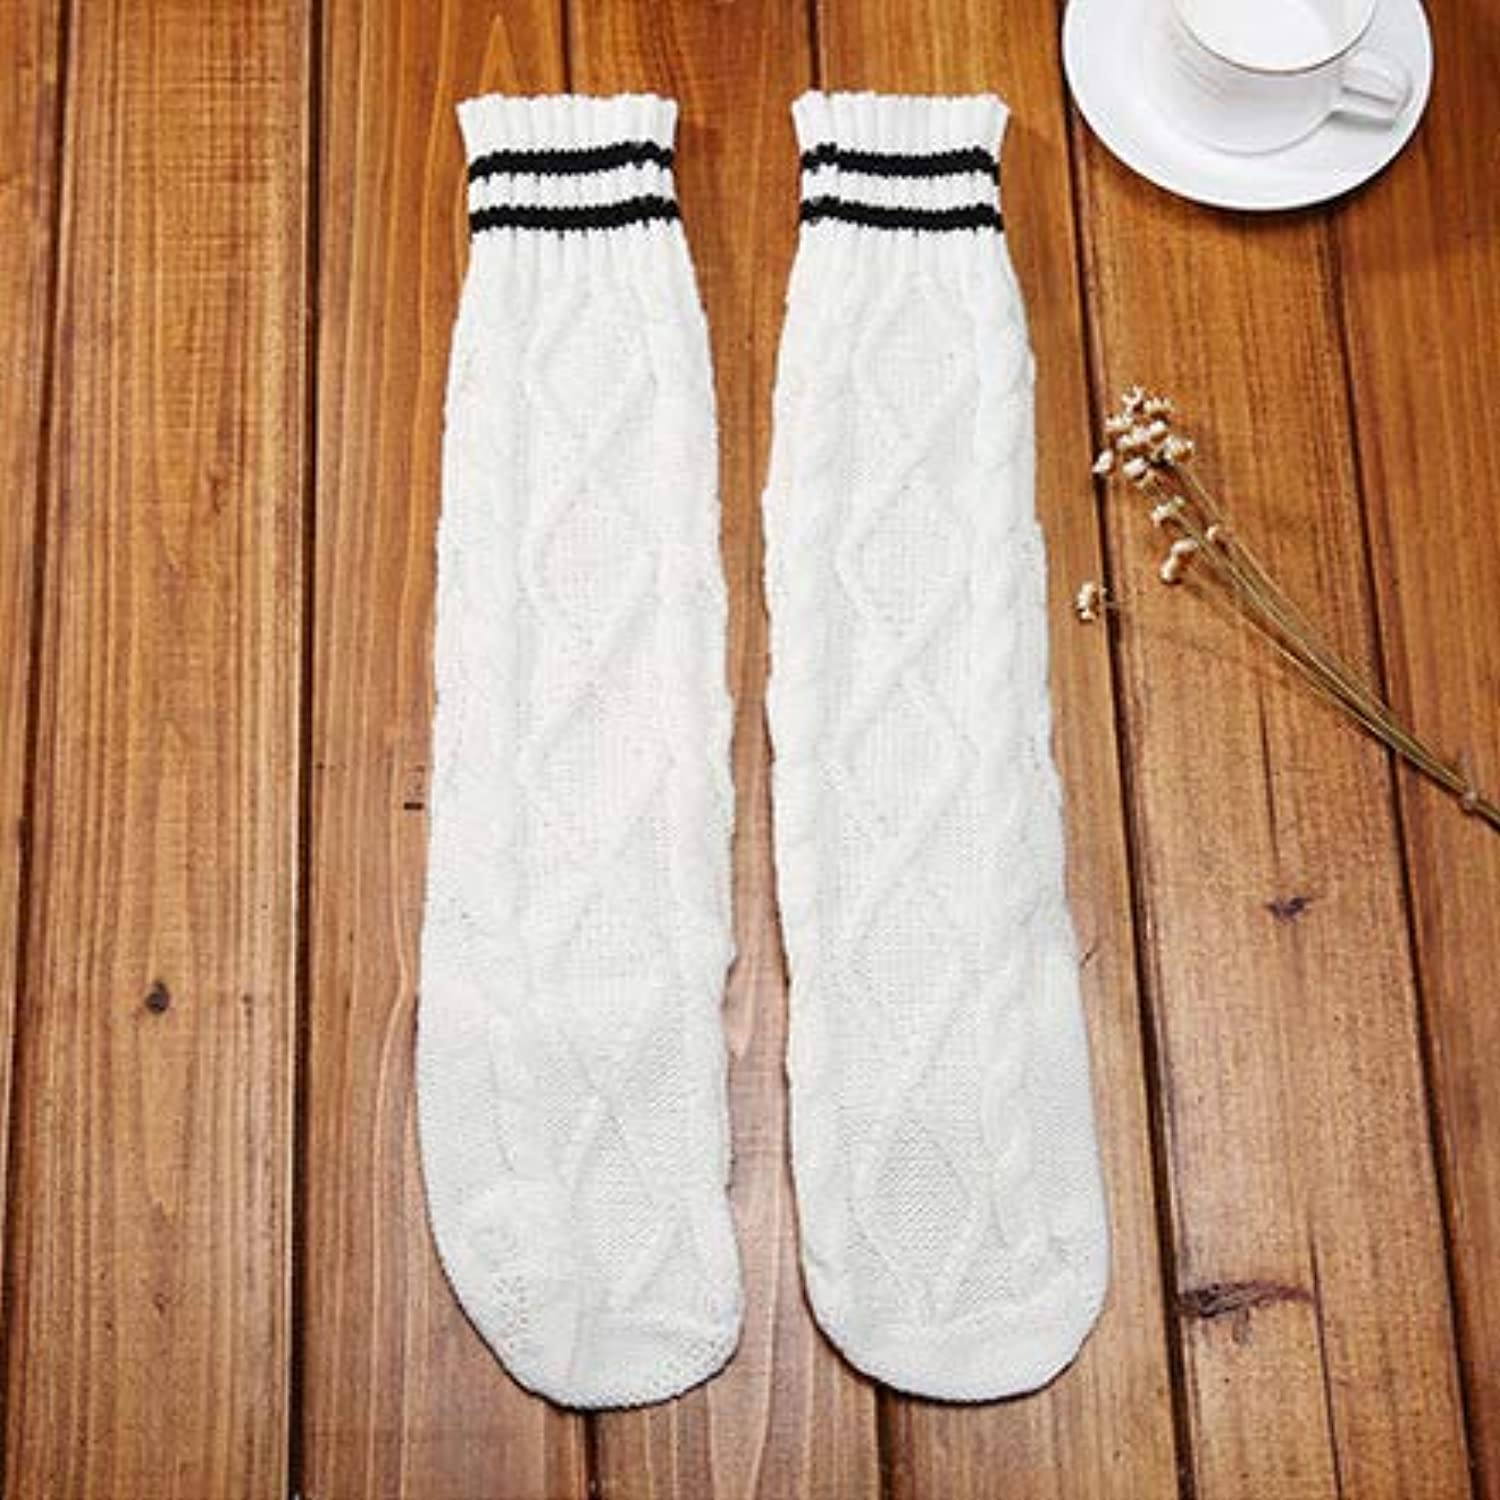 Comfortable Arm Warmer Leg Stocking Home Socks Autumn and Winter Thick Wool Floor Socks Striped Retro Warm Pile heap Korean Tube Female Boots Socks (color   White)